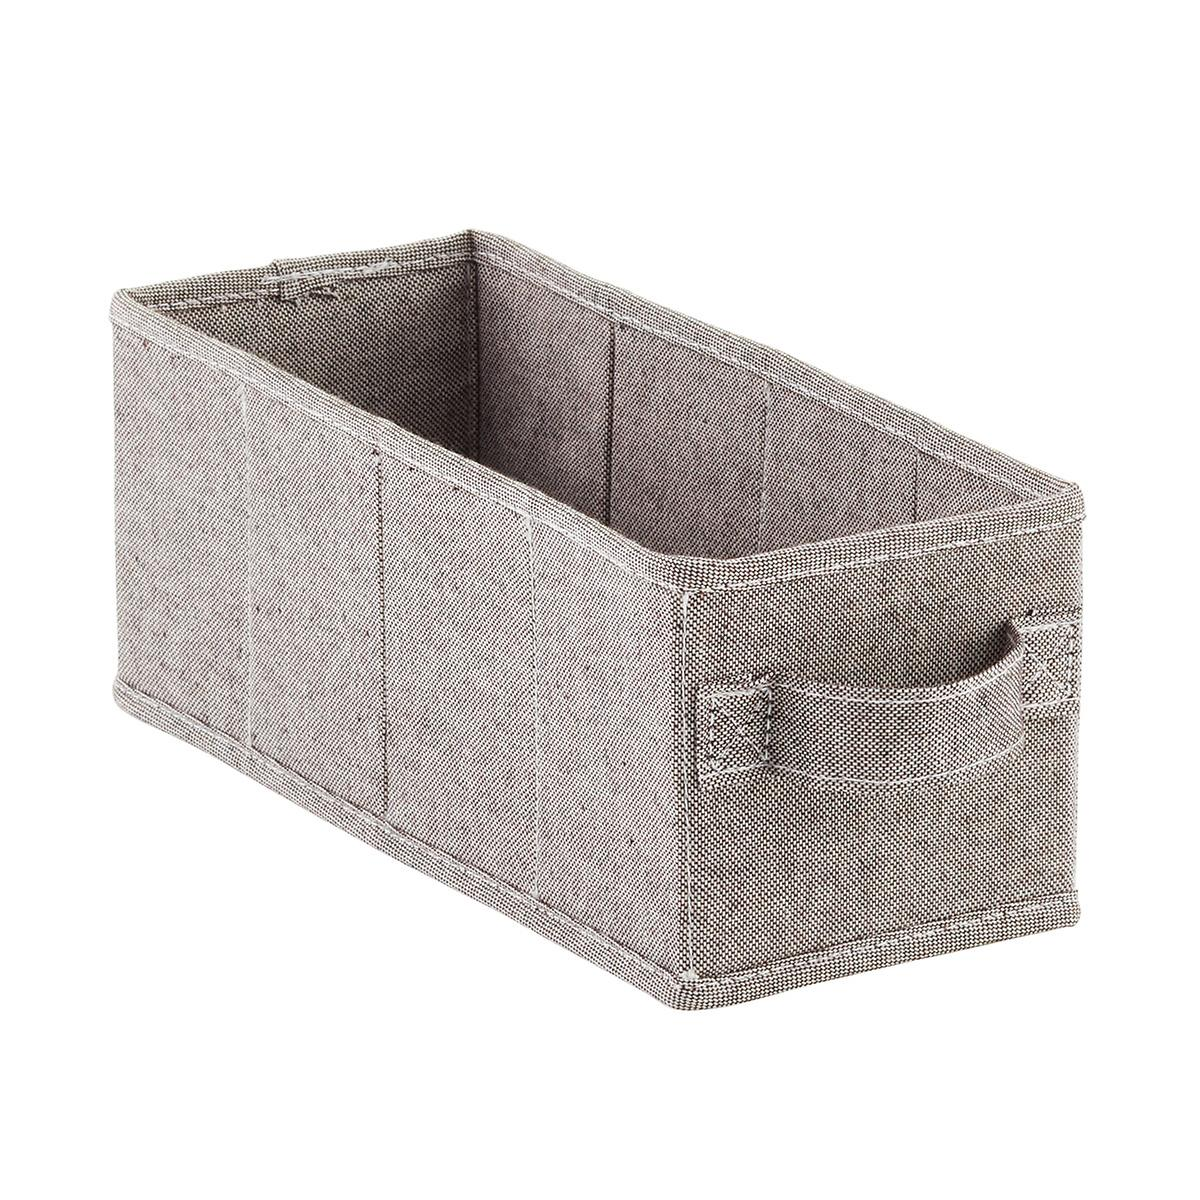 furniture grey hamper rustic cabinet closet herman handle organizer white foldable drawers ikea new dresser slice wire storage bin drawer rattan one cube wicker unit basket two pine and cheap color fabric designs vintage handmade